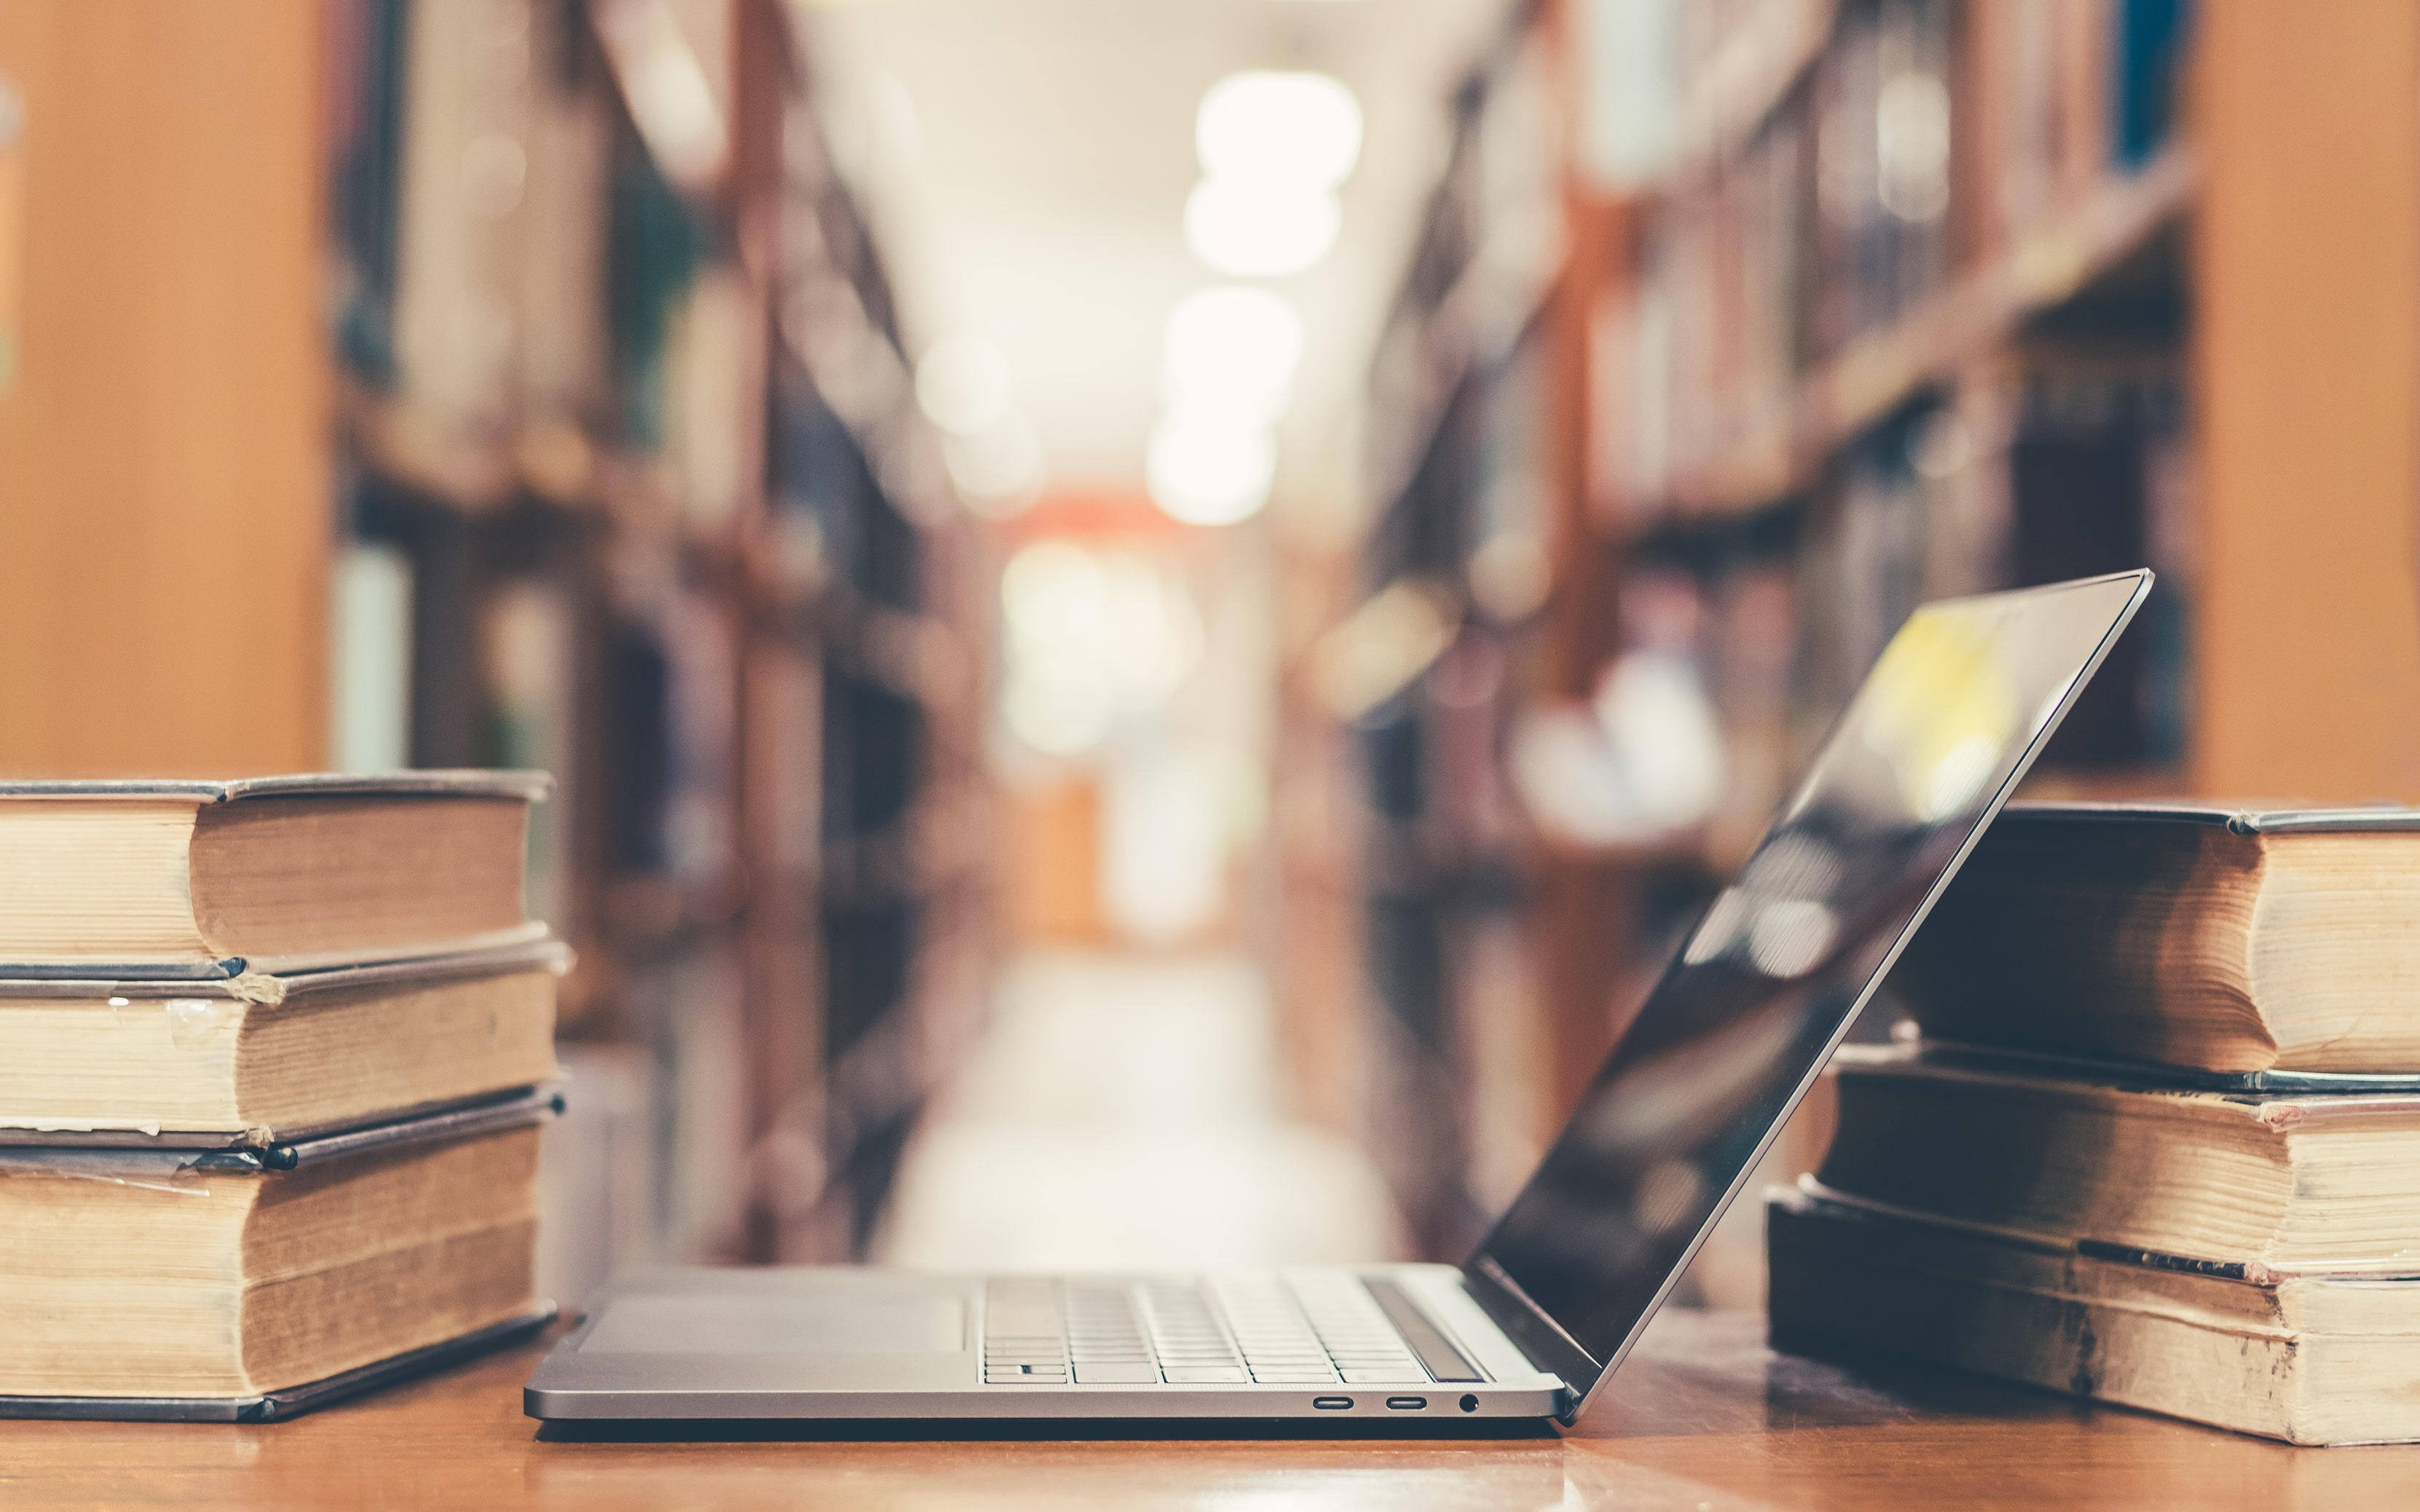 laptop on a desk flanked by book stacks